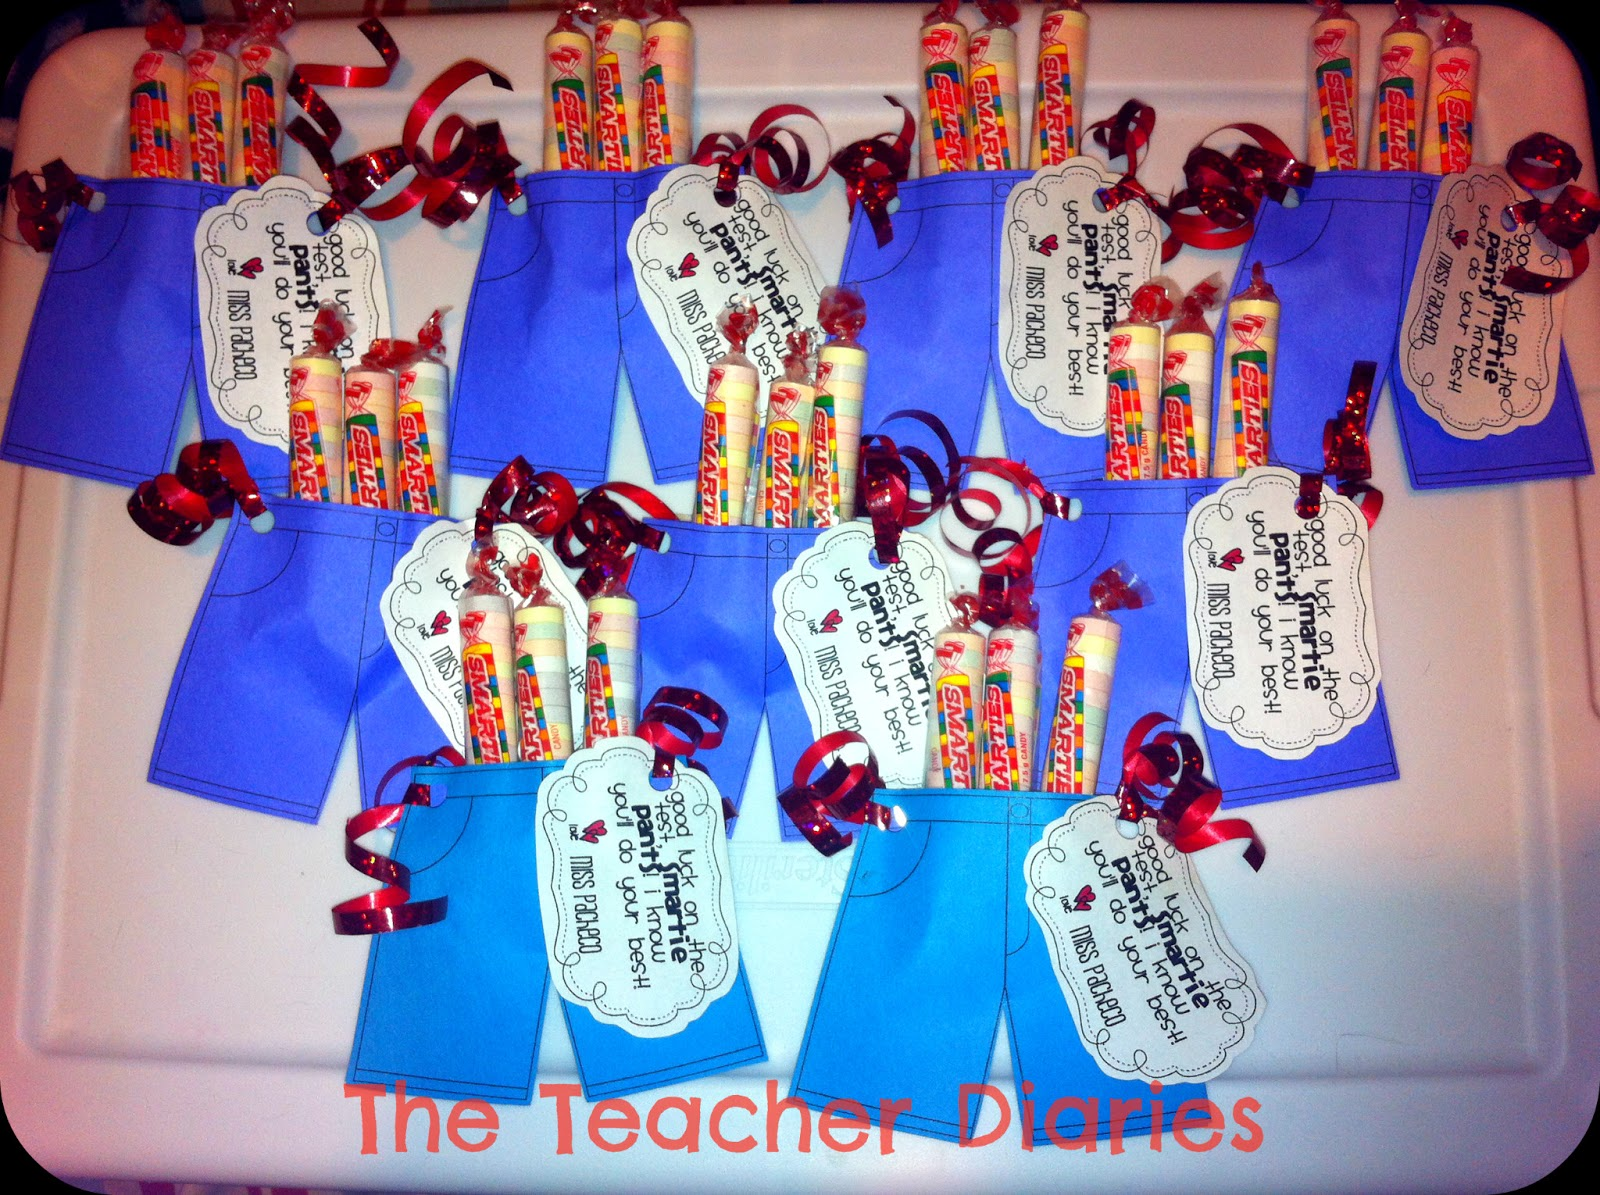 The teacher diaries five for friday my first one maxwellsz